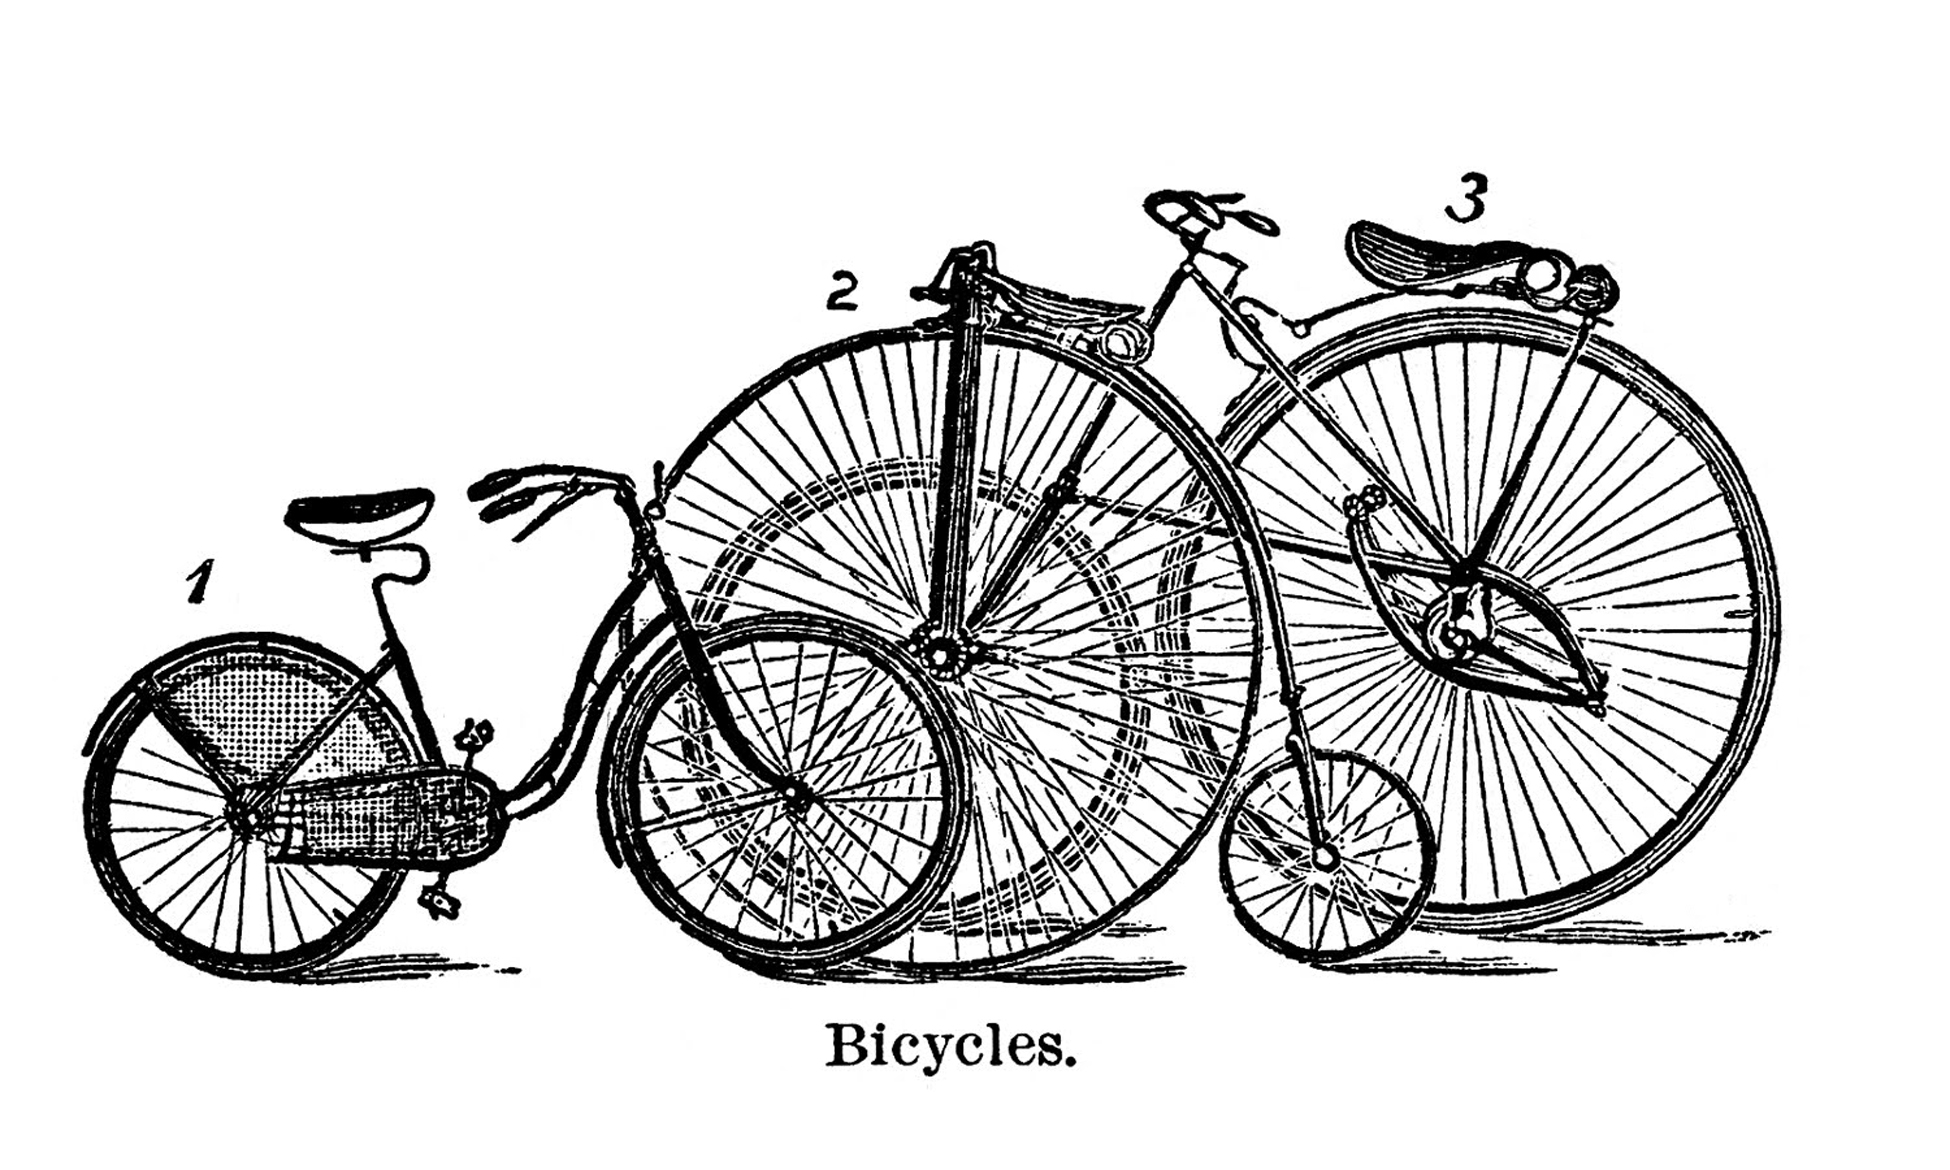 15 Bicycle Clip Art Images